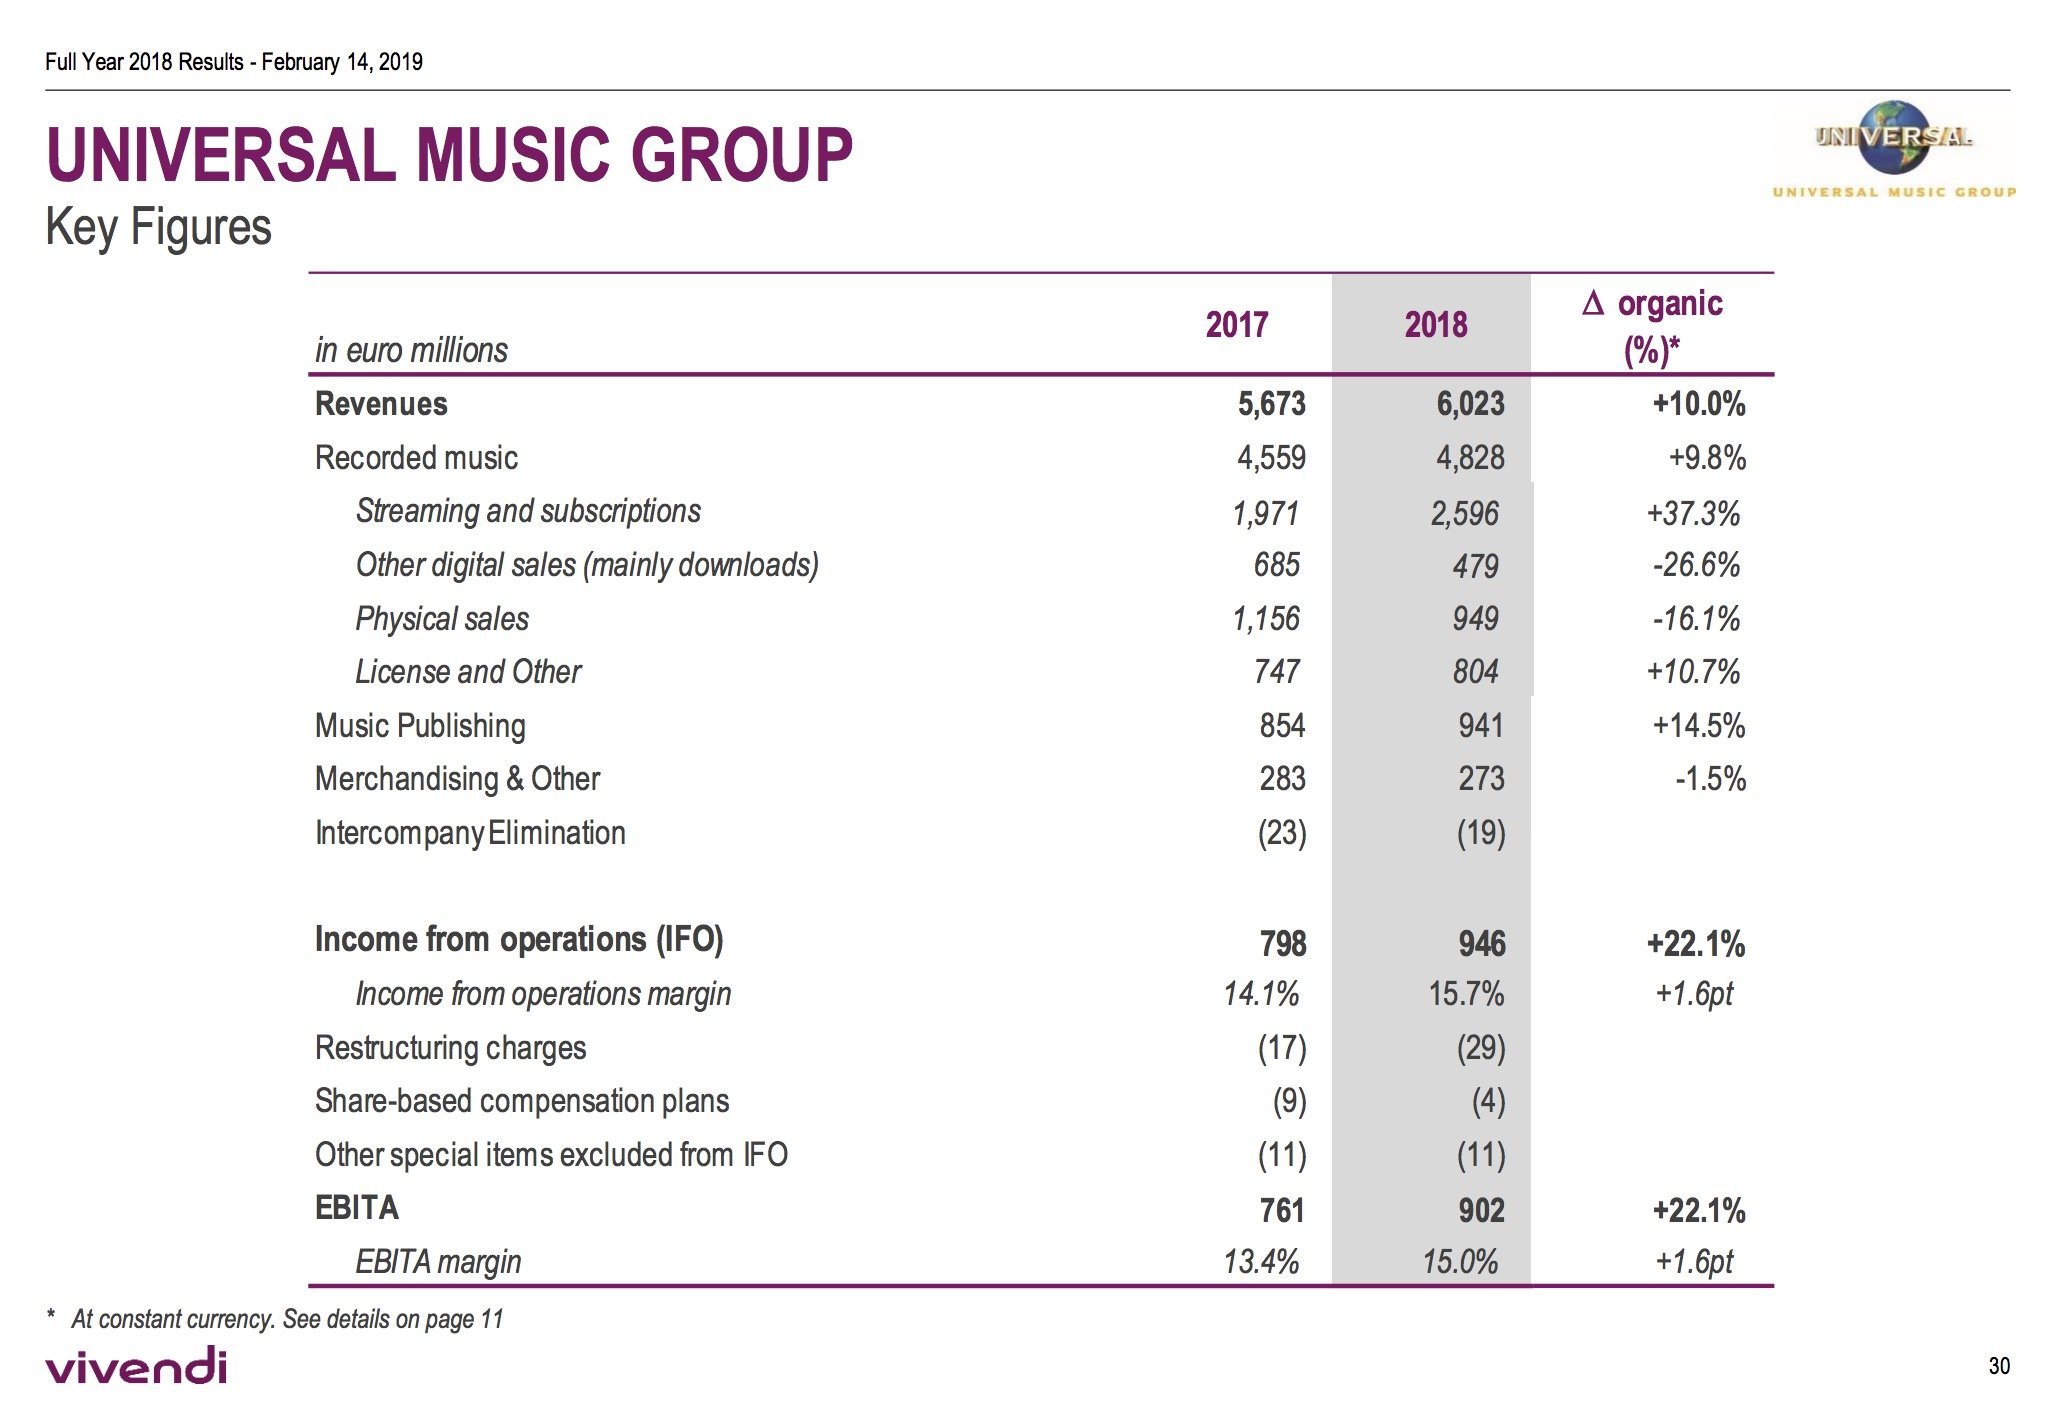 Universal Music Group posts record $7 1bn in 2018 revenues, with a